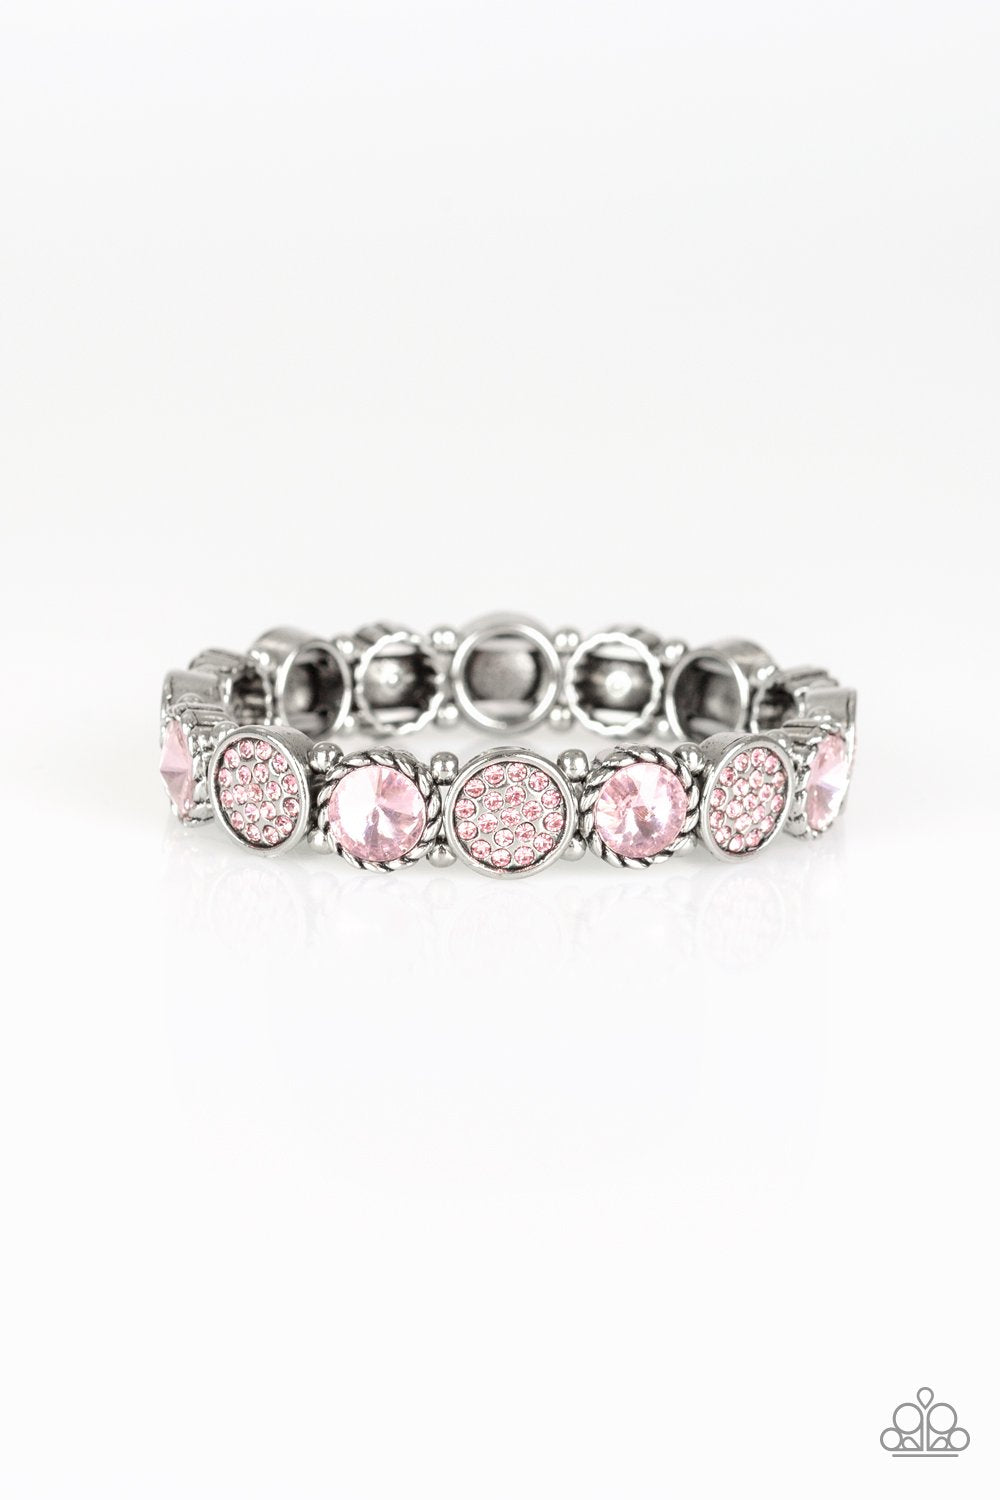 Take A Moment To Reflect - Pink - Paparazzi Accessories - Pretty Girl Jewels